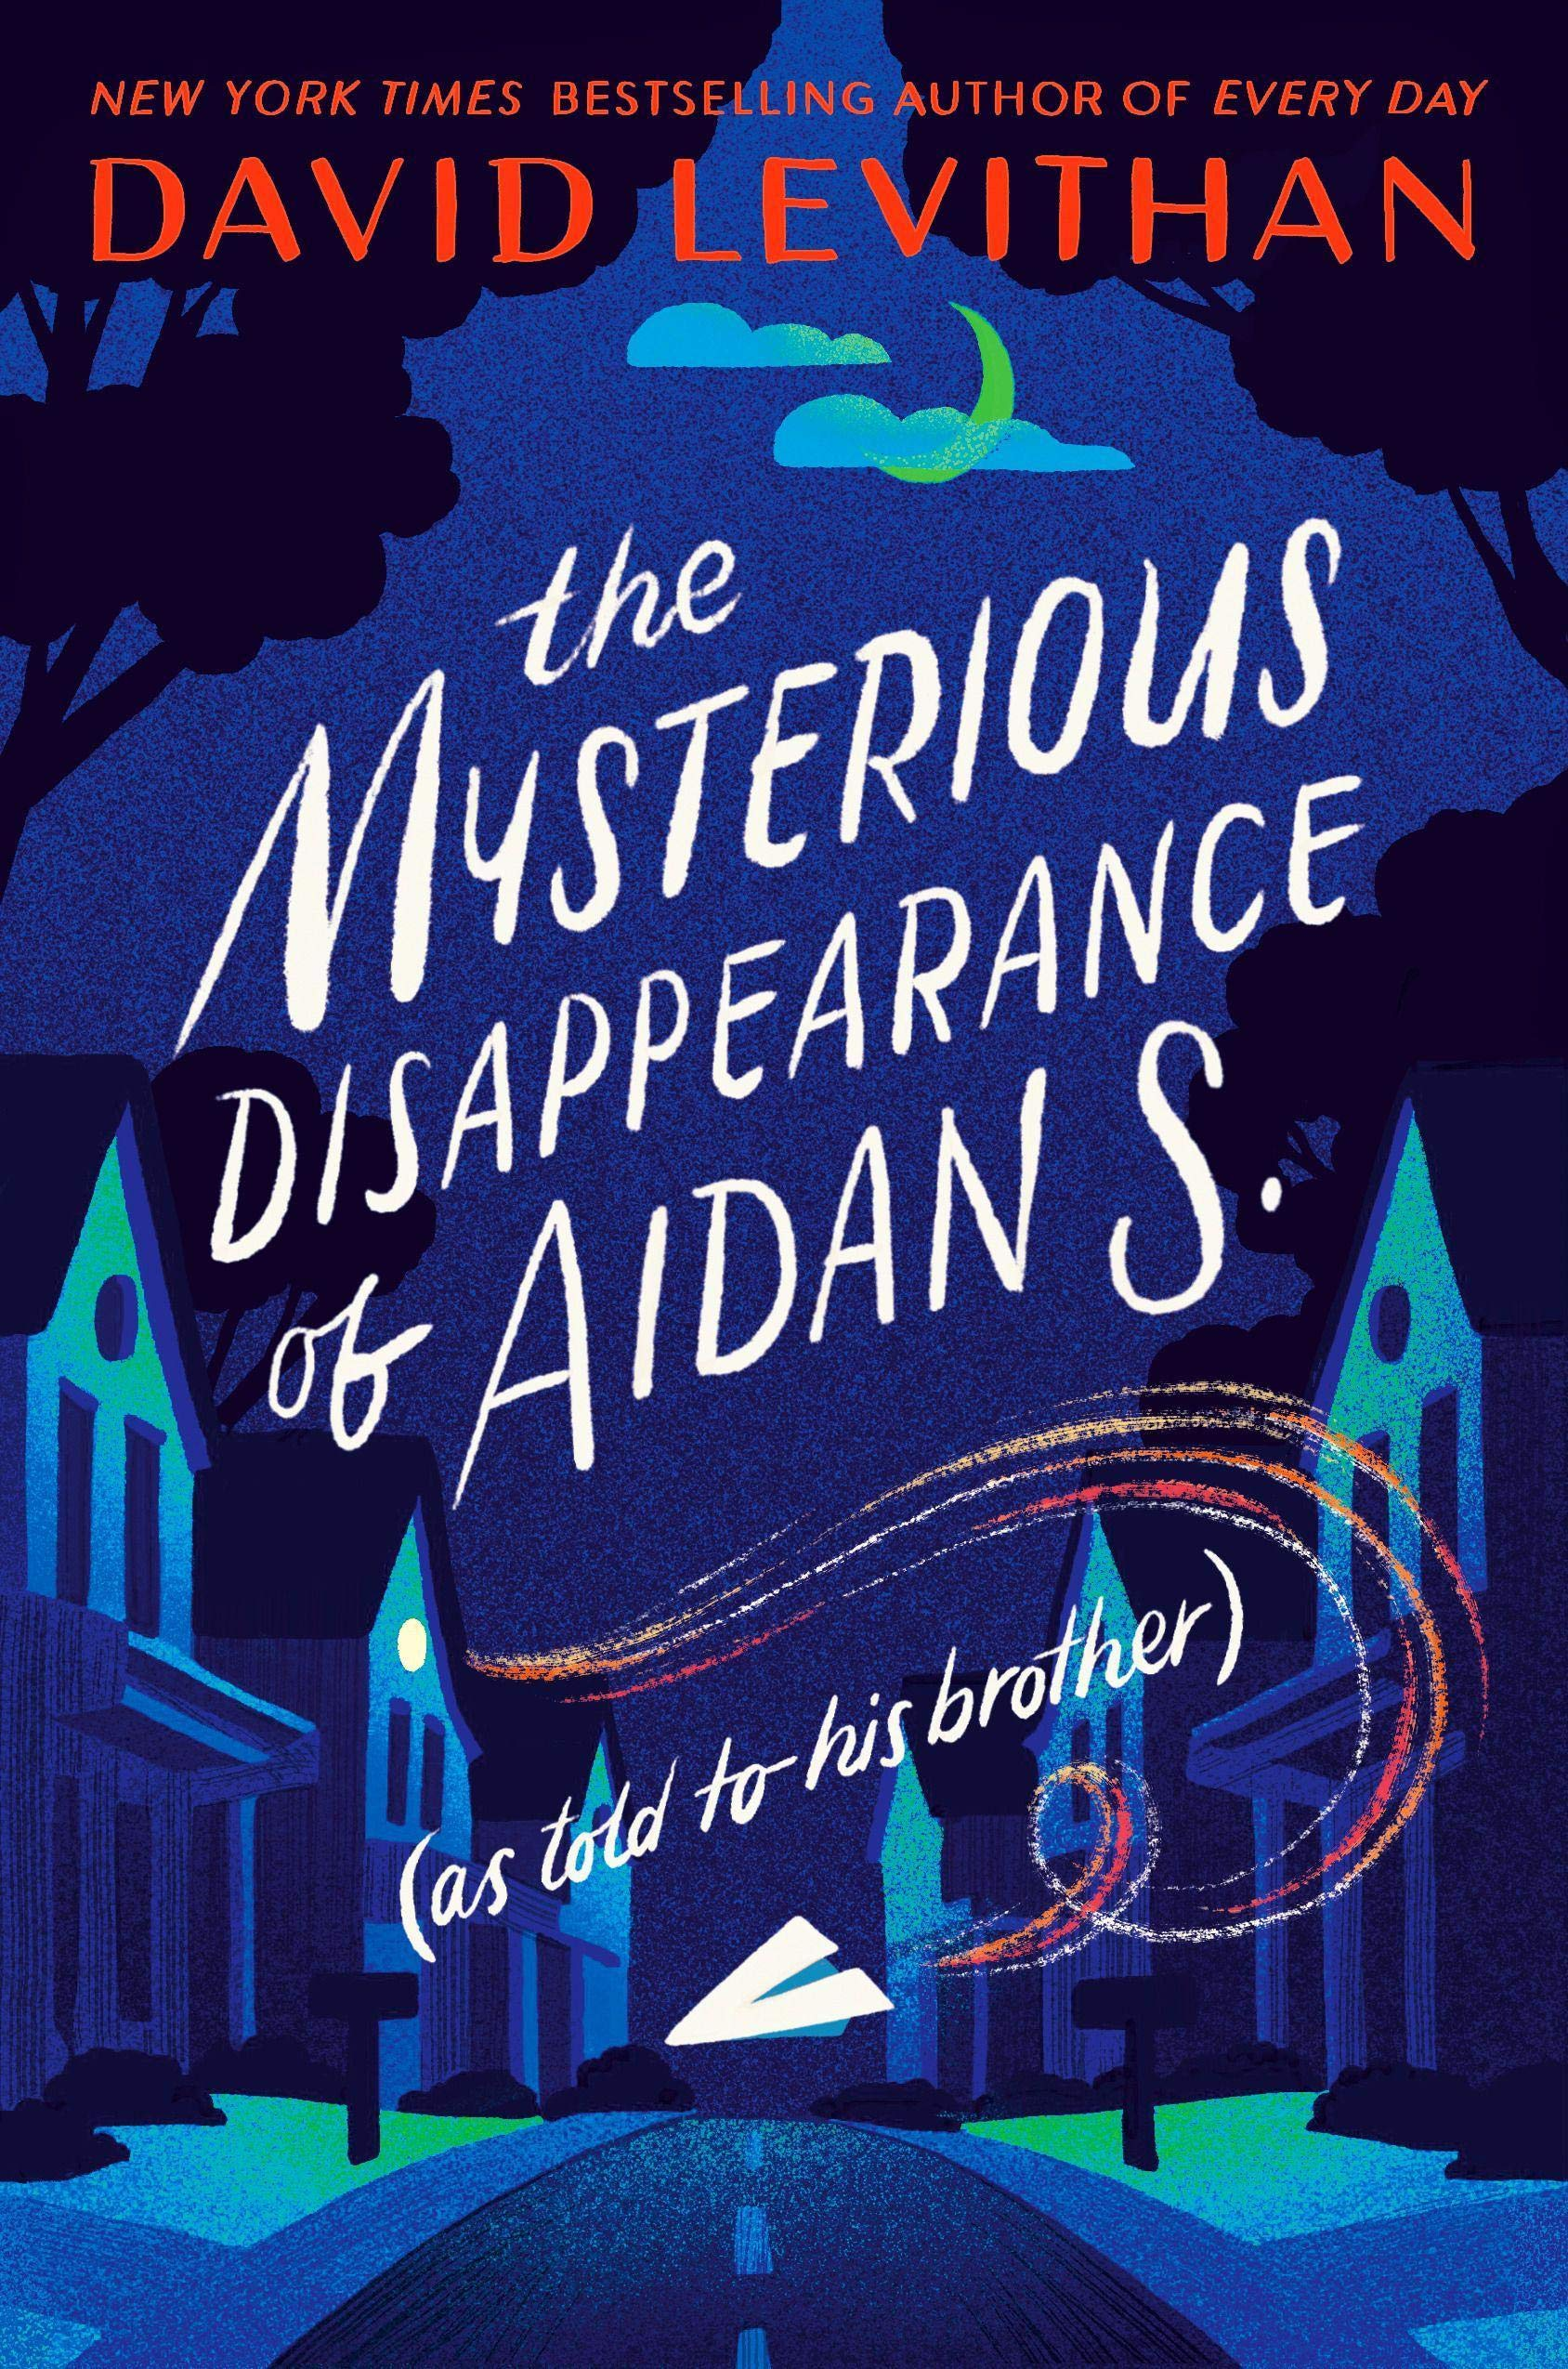 Cover: David Levithan The mysterious disappearance of Aidan S. (as told to his brother)